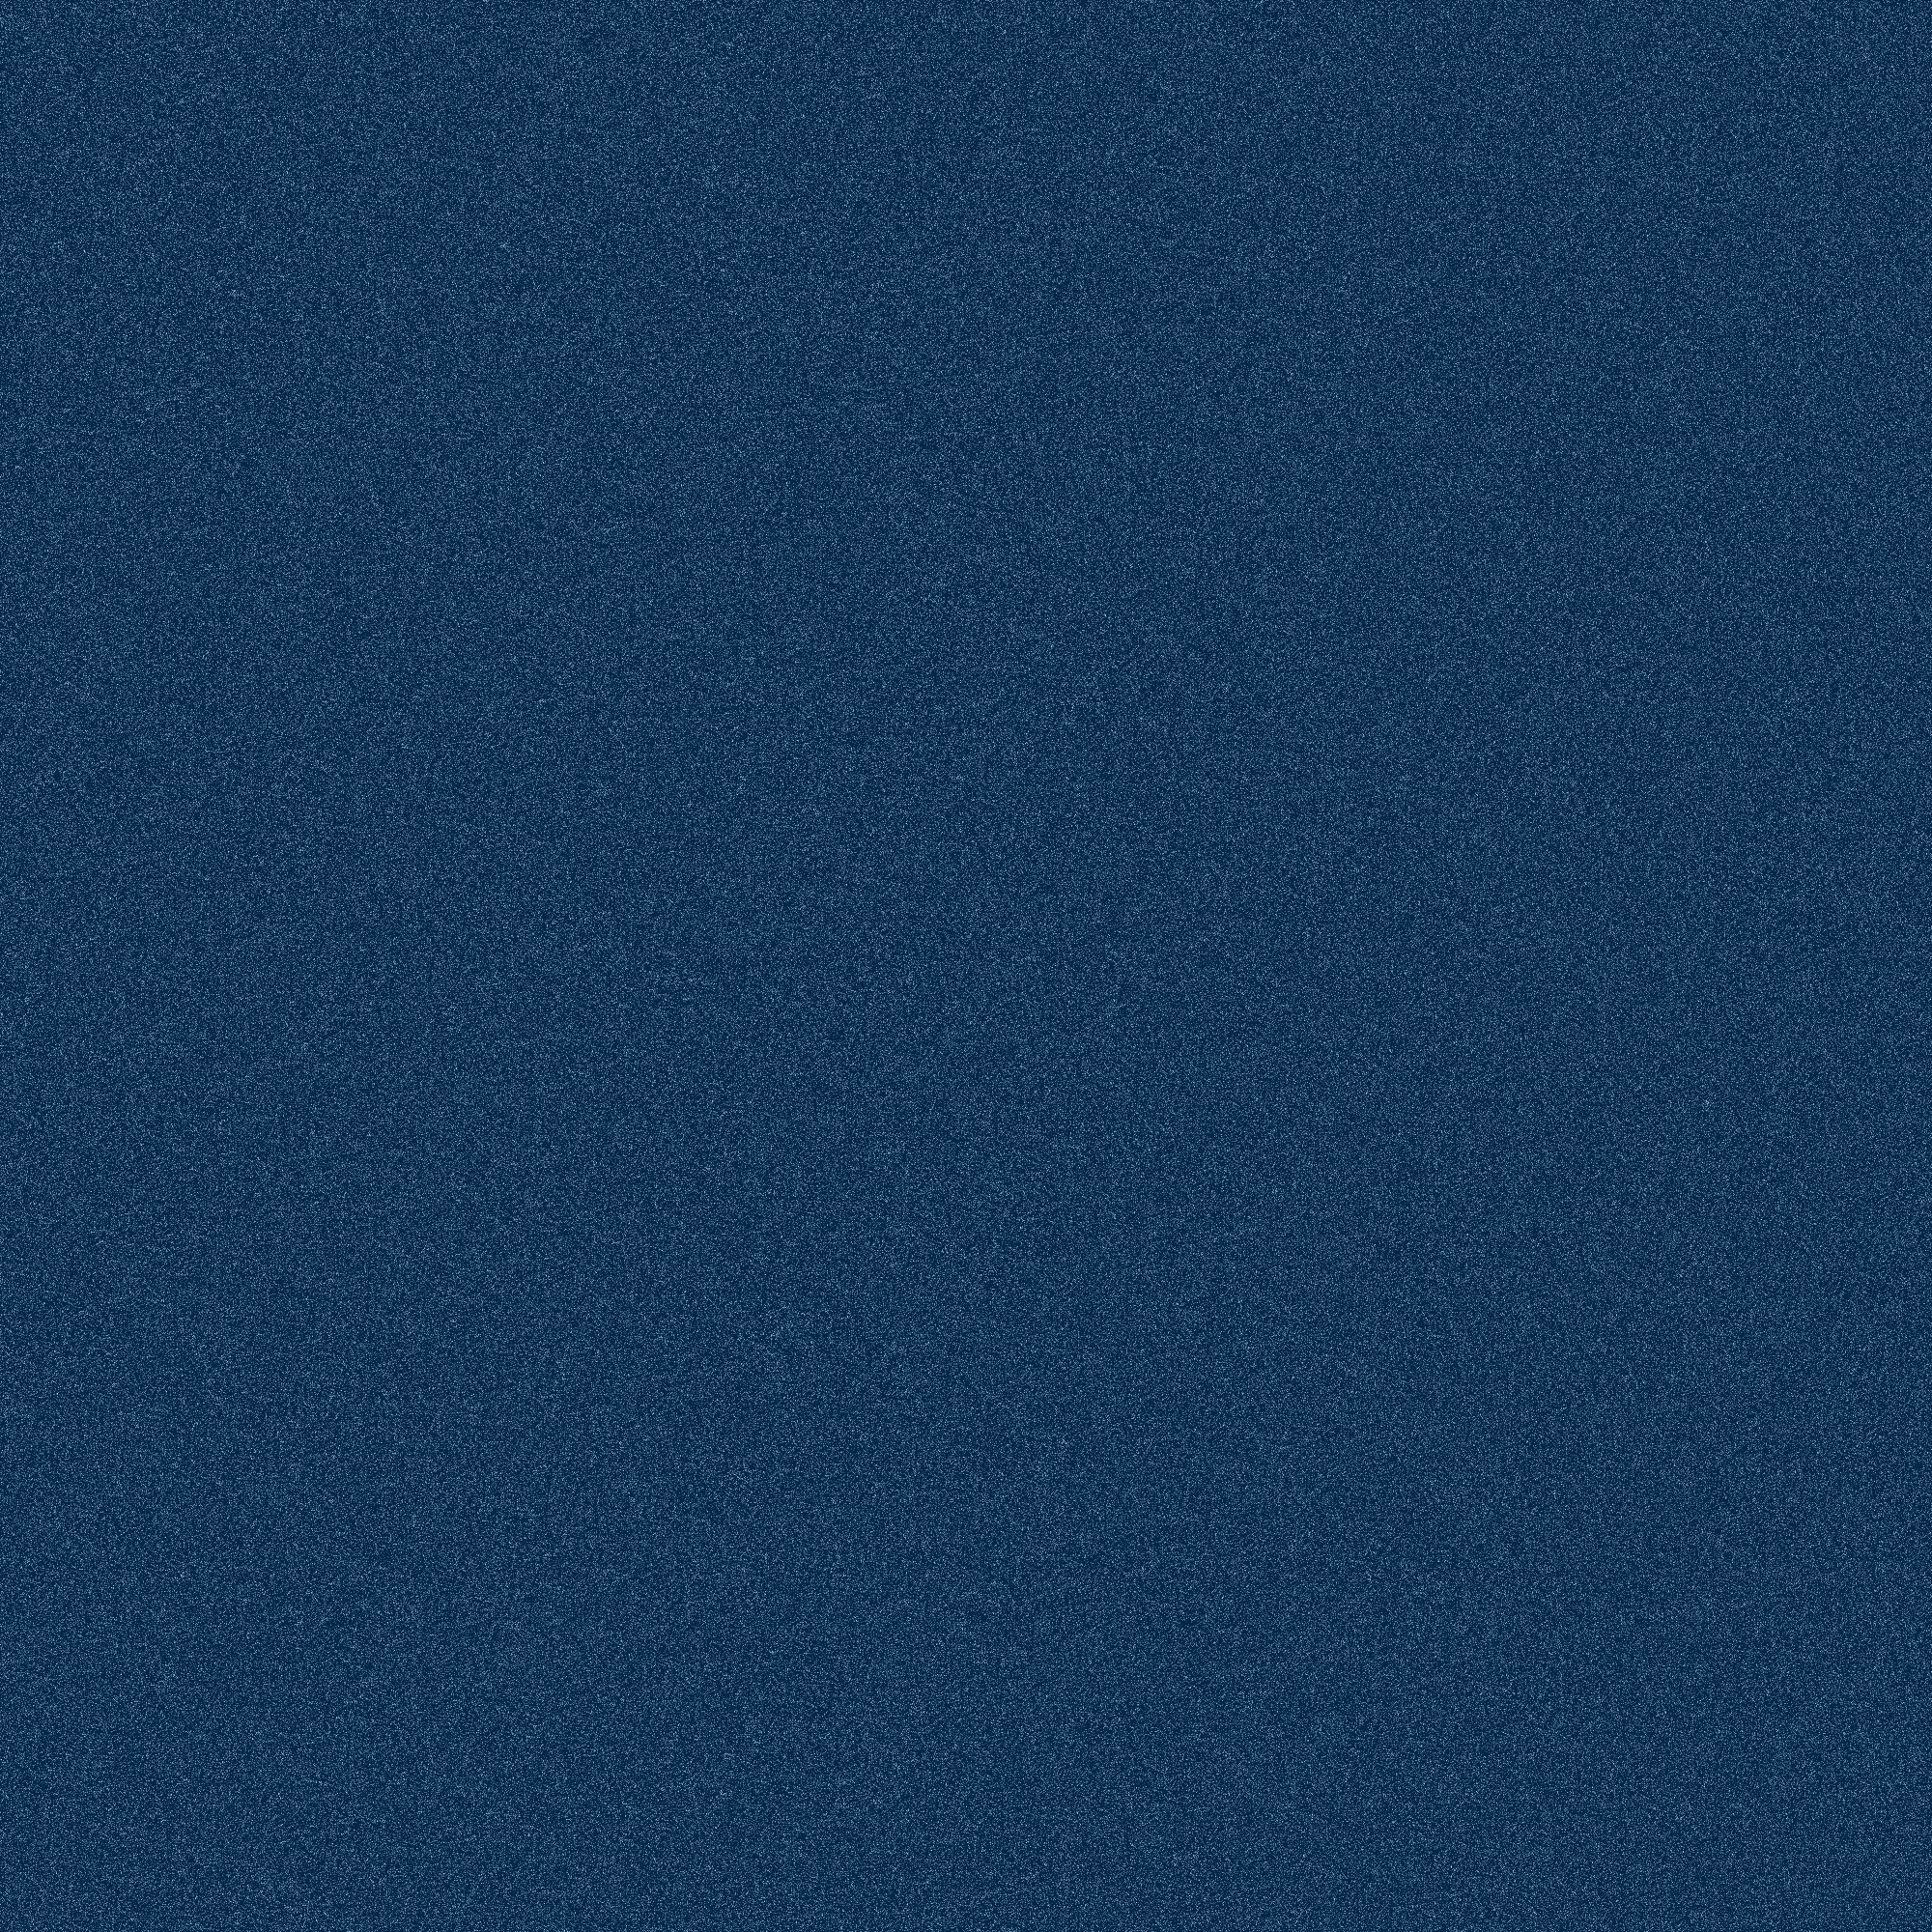 "navy blue"" noise background texture 